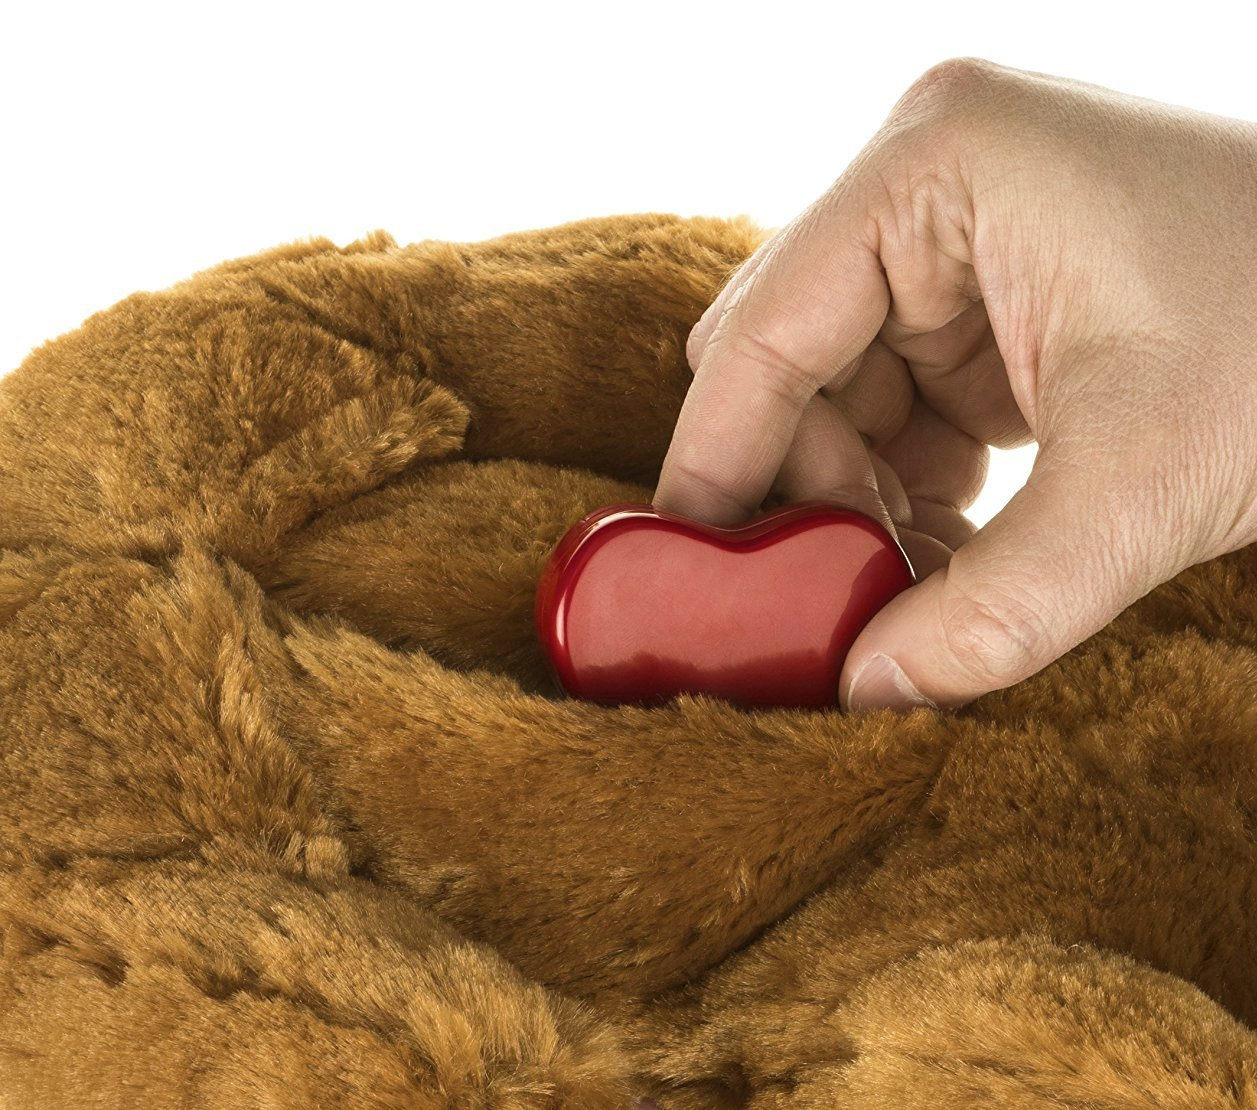 Smart Pet Love Snuggle Puppy Behavioral Aid Toy, Brown Mutt by Smart Pet Love (Image #3)